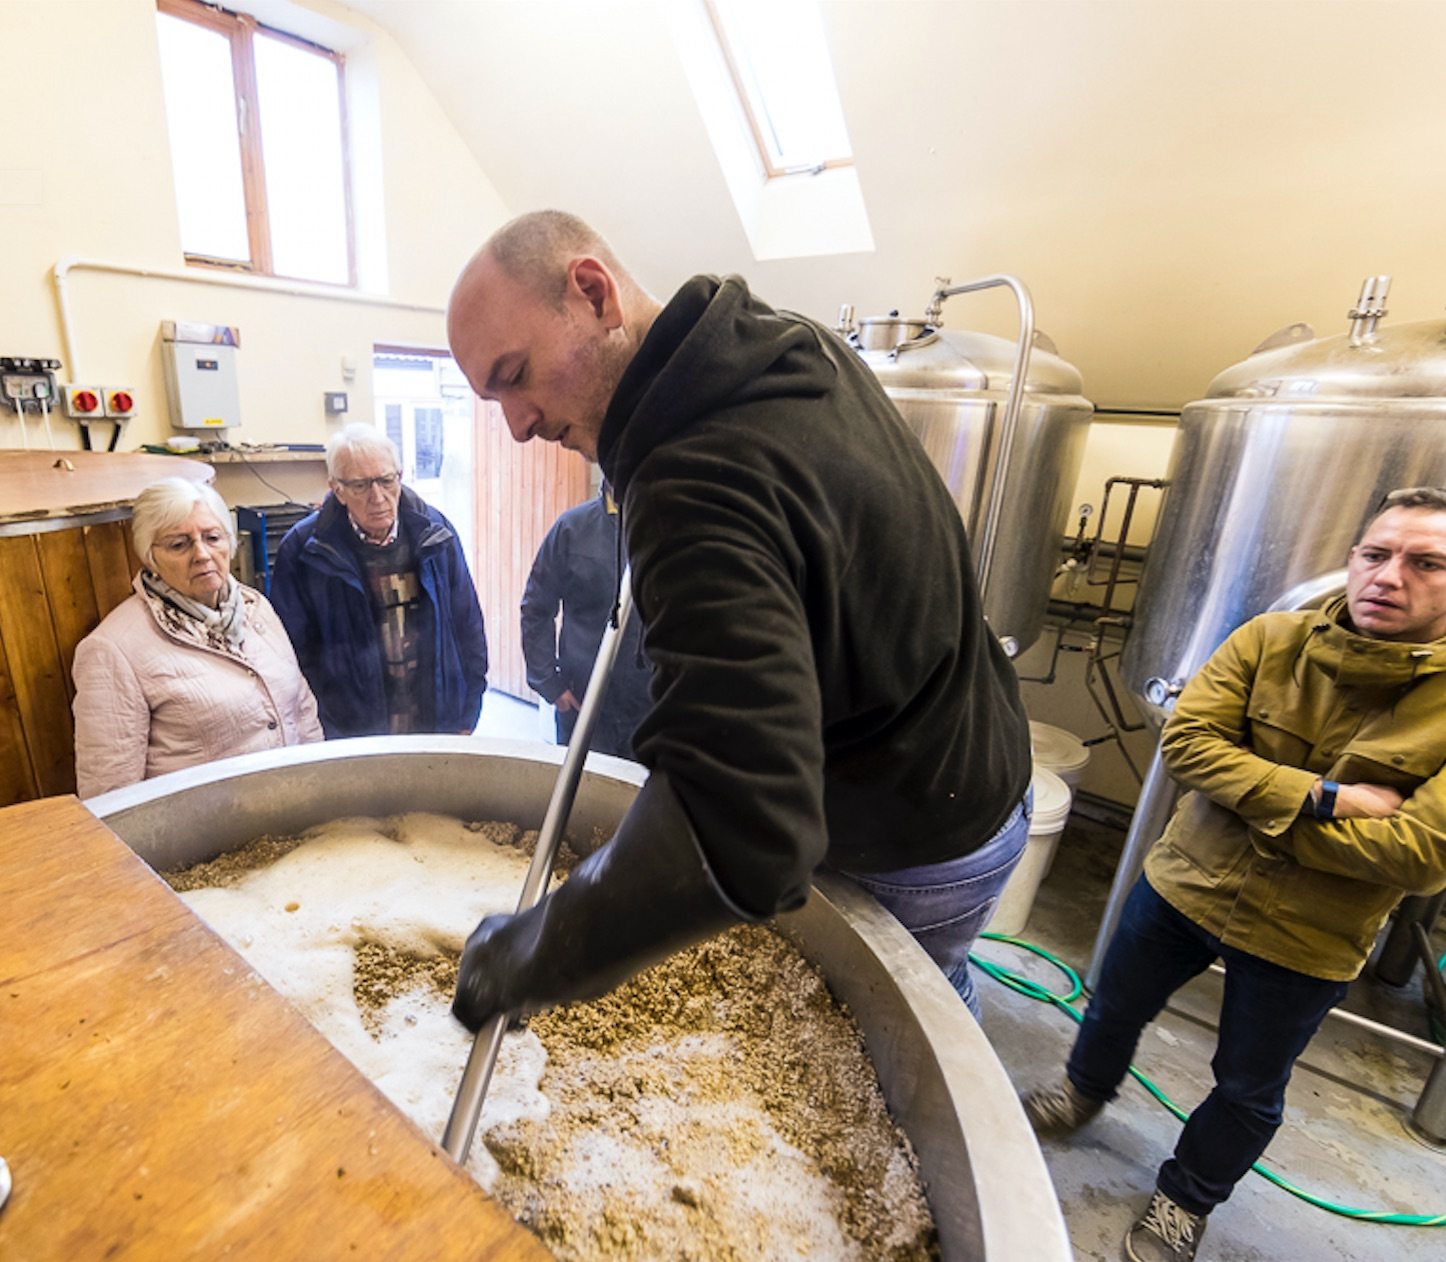 Will Kear Hillside Head Brewer running a brewing experience day